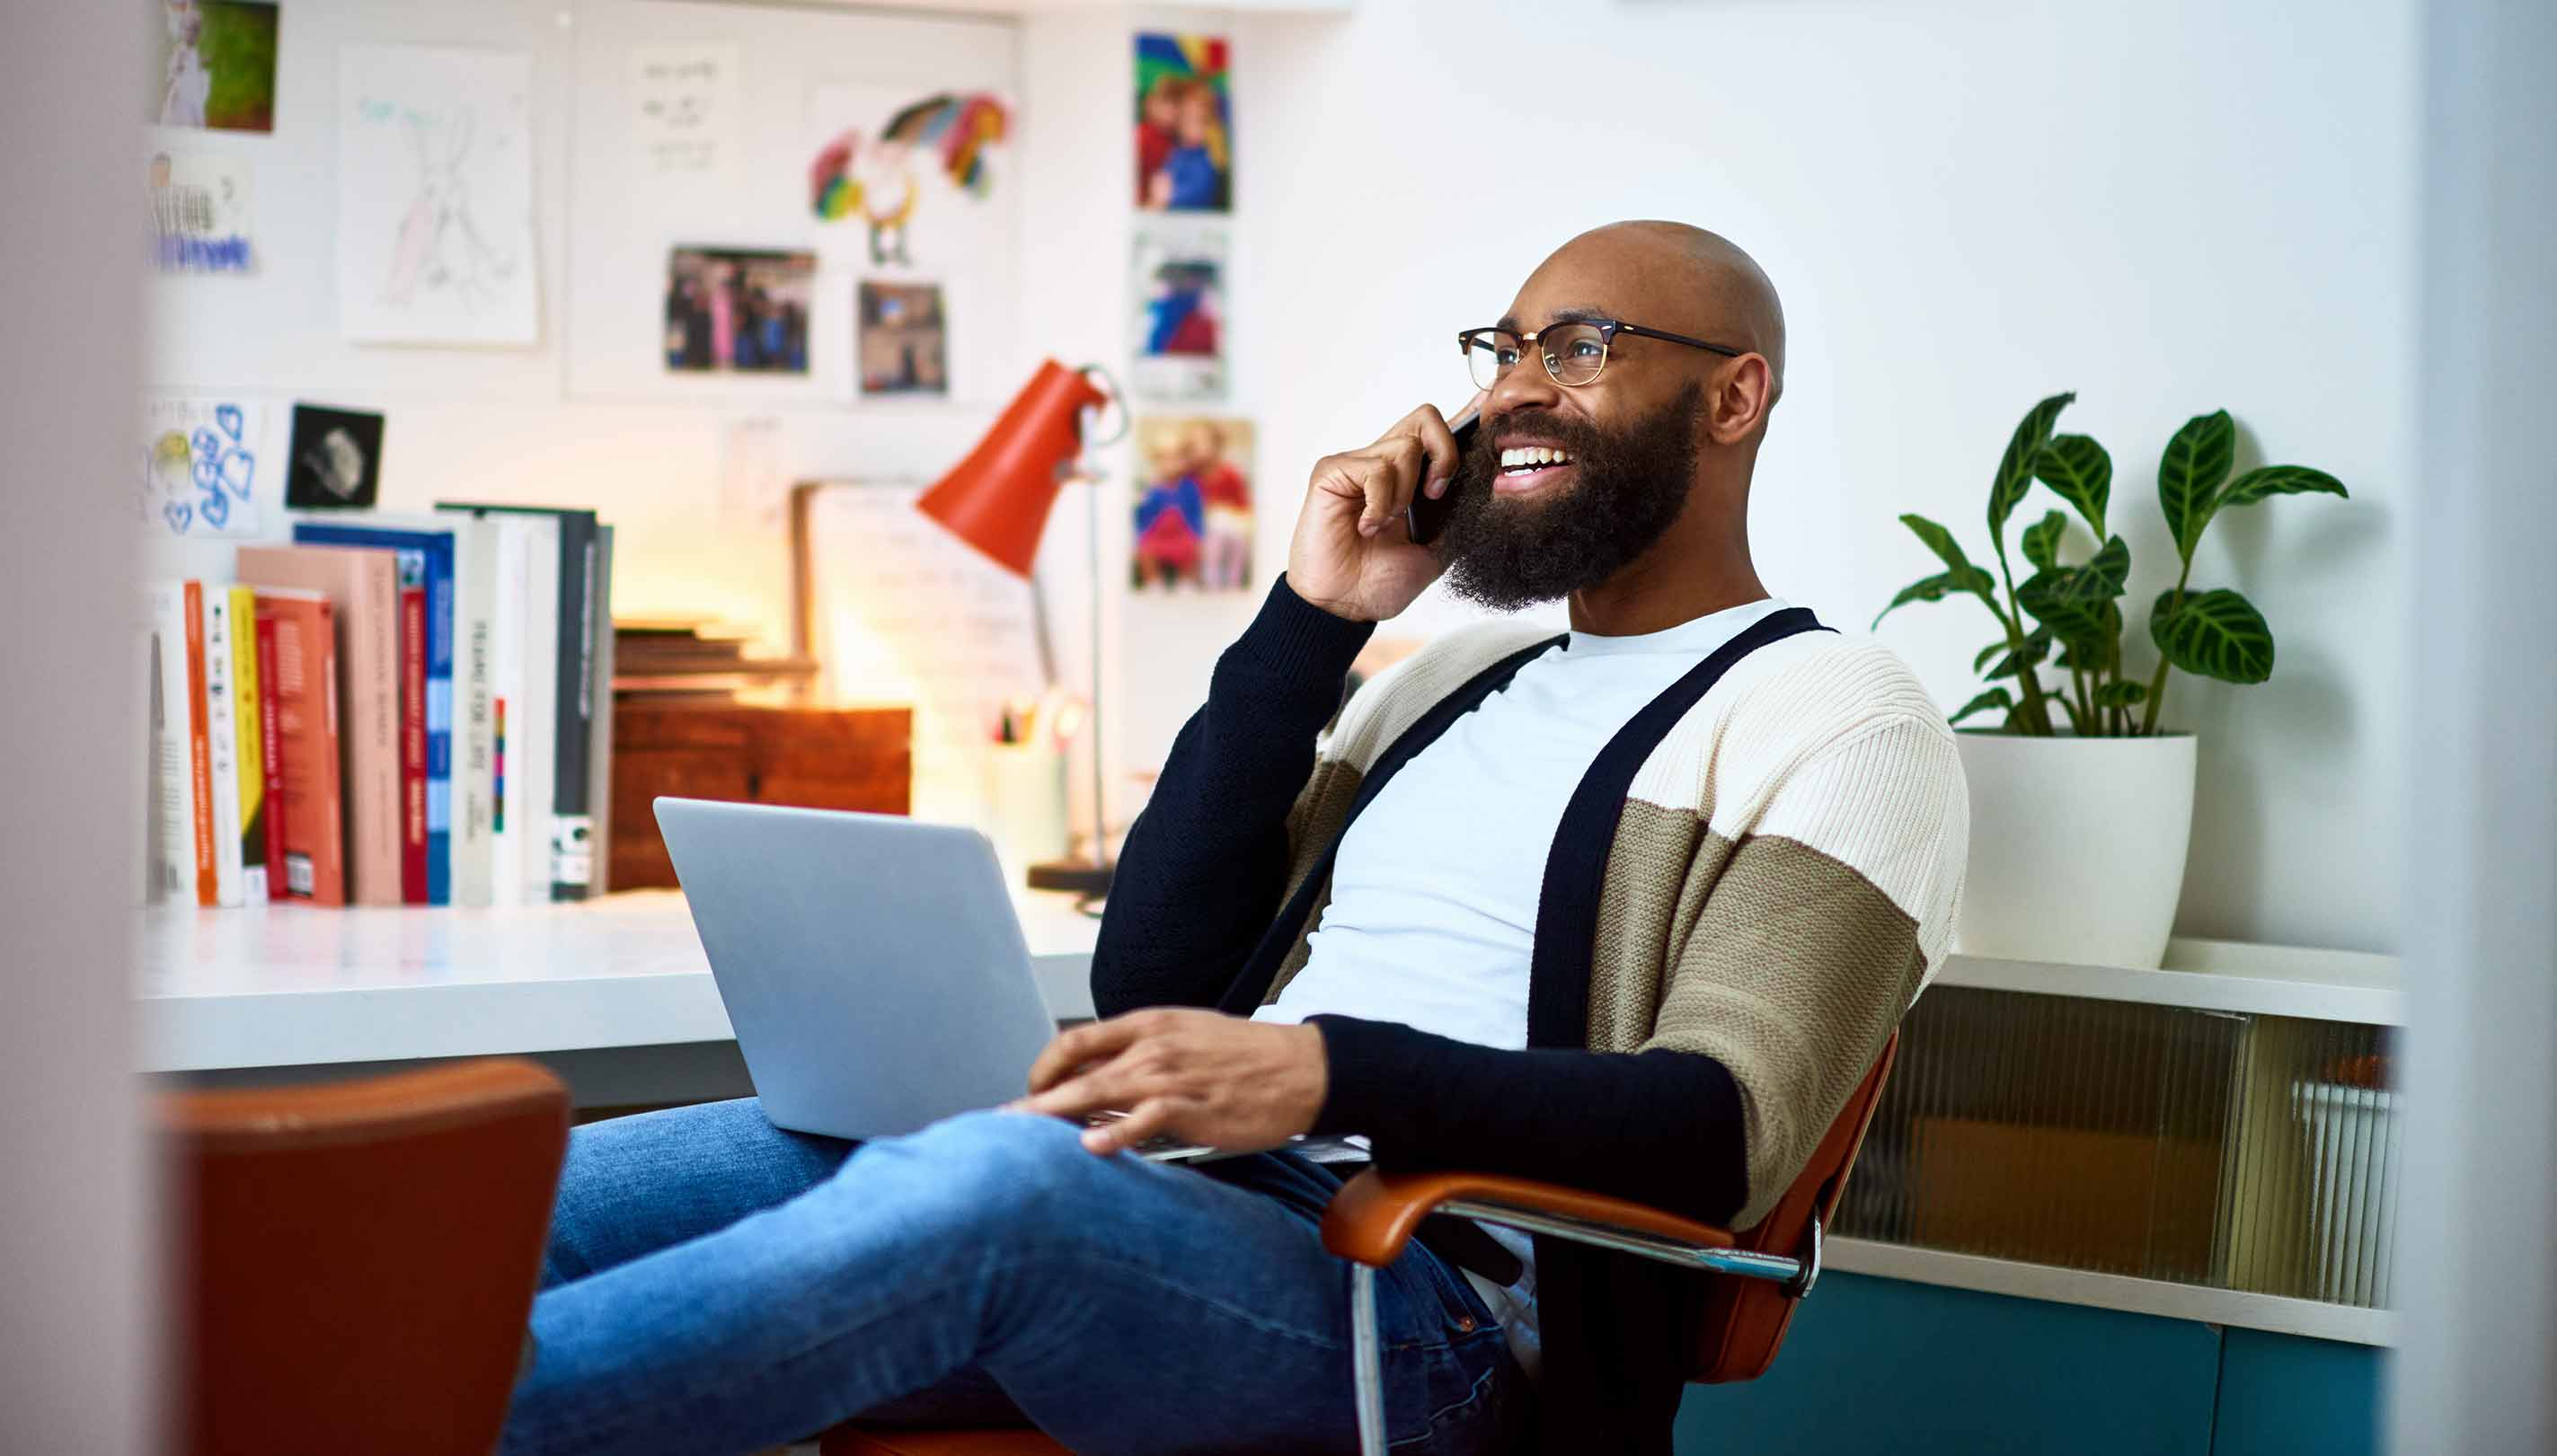 Man smiling as he works from a modern home office